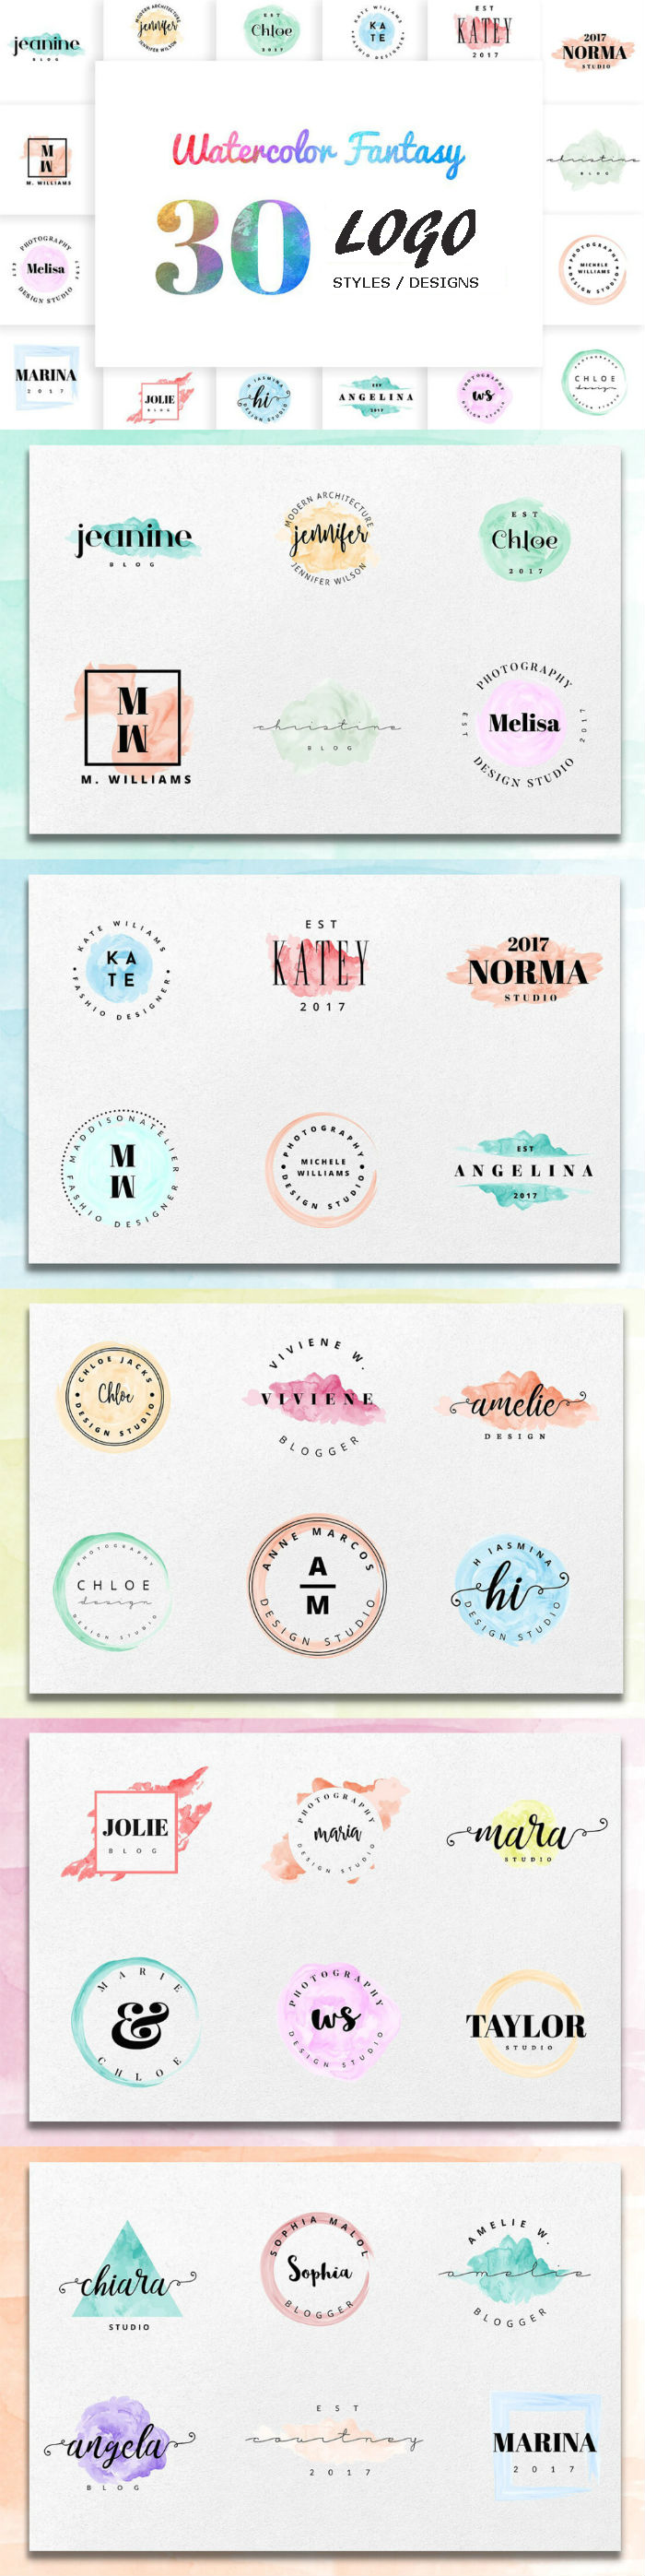 Watercolor Logo Designs - IsikChick Style